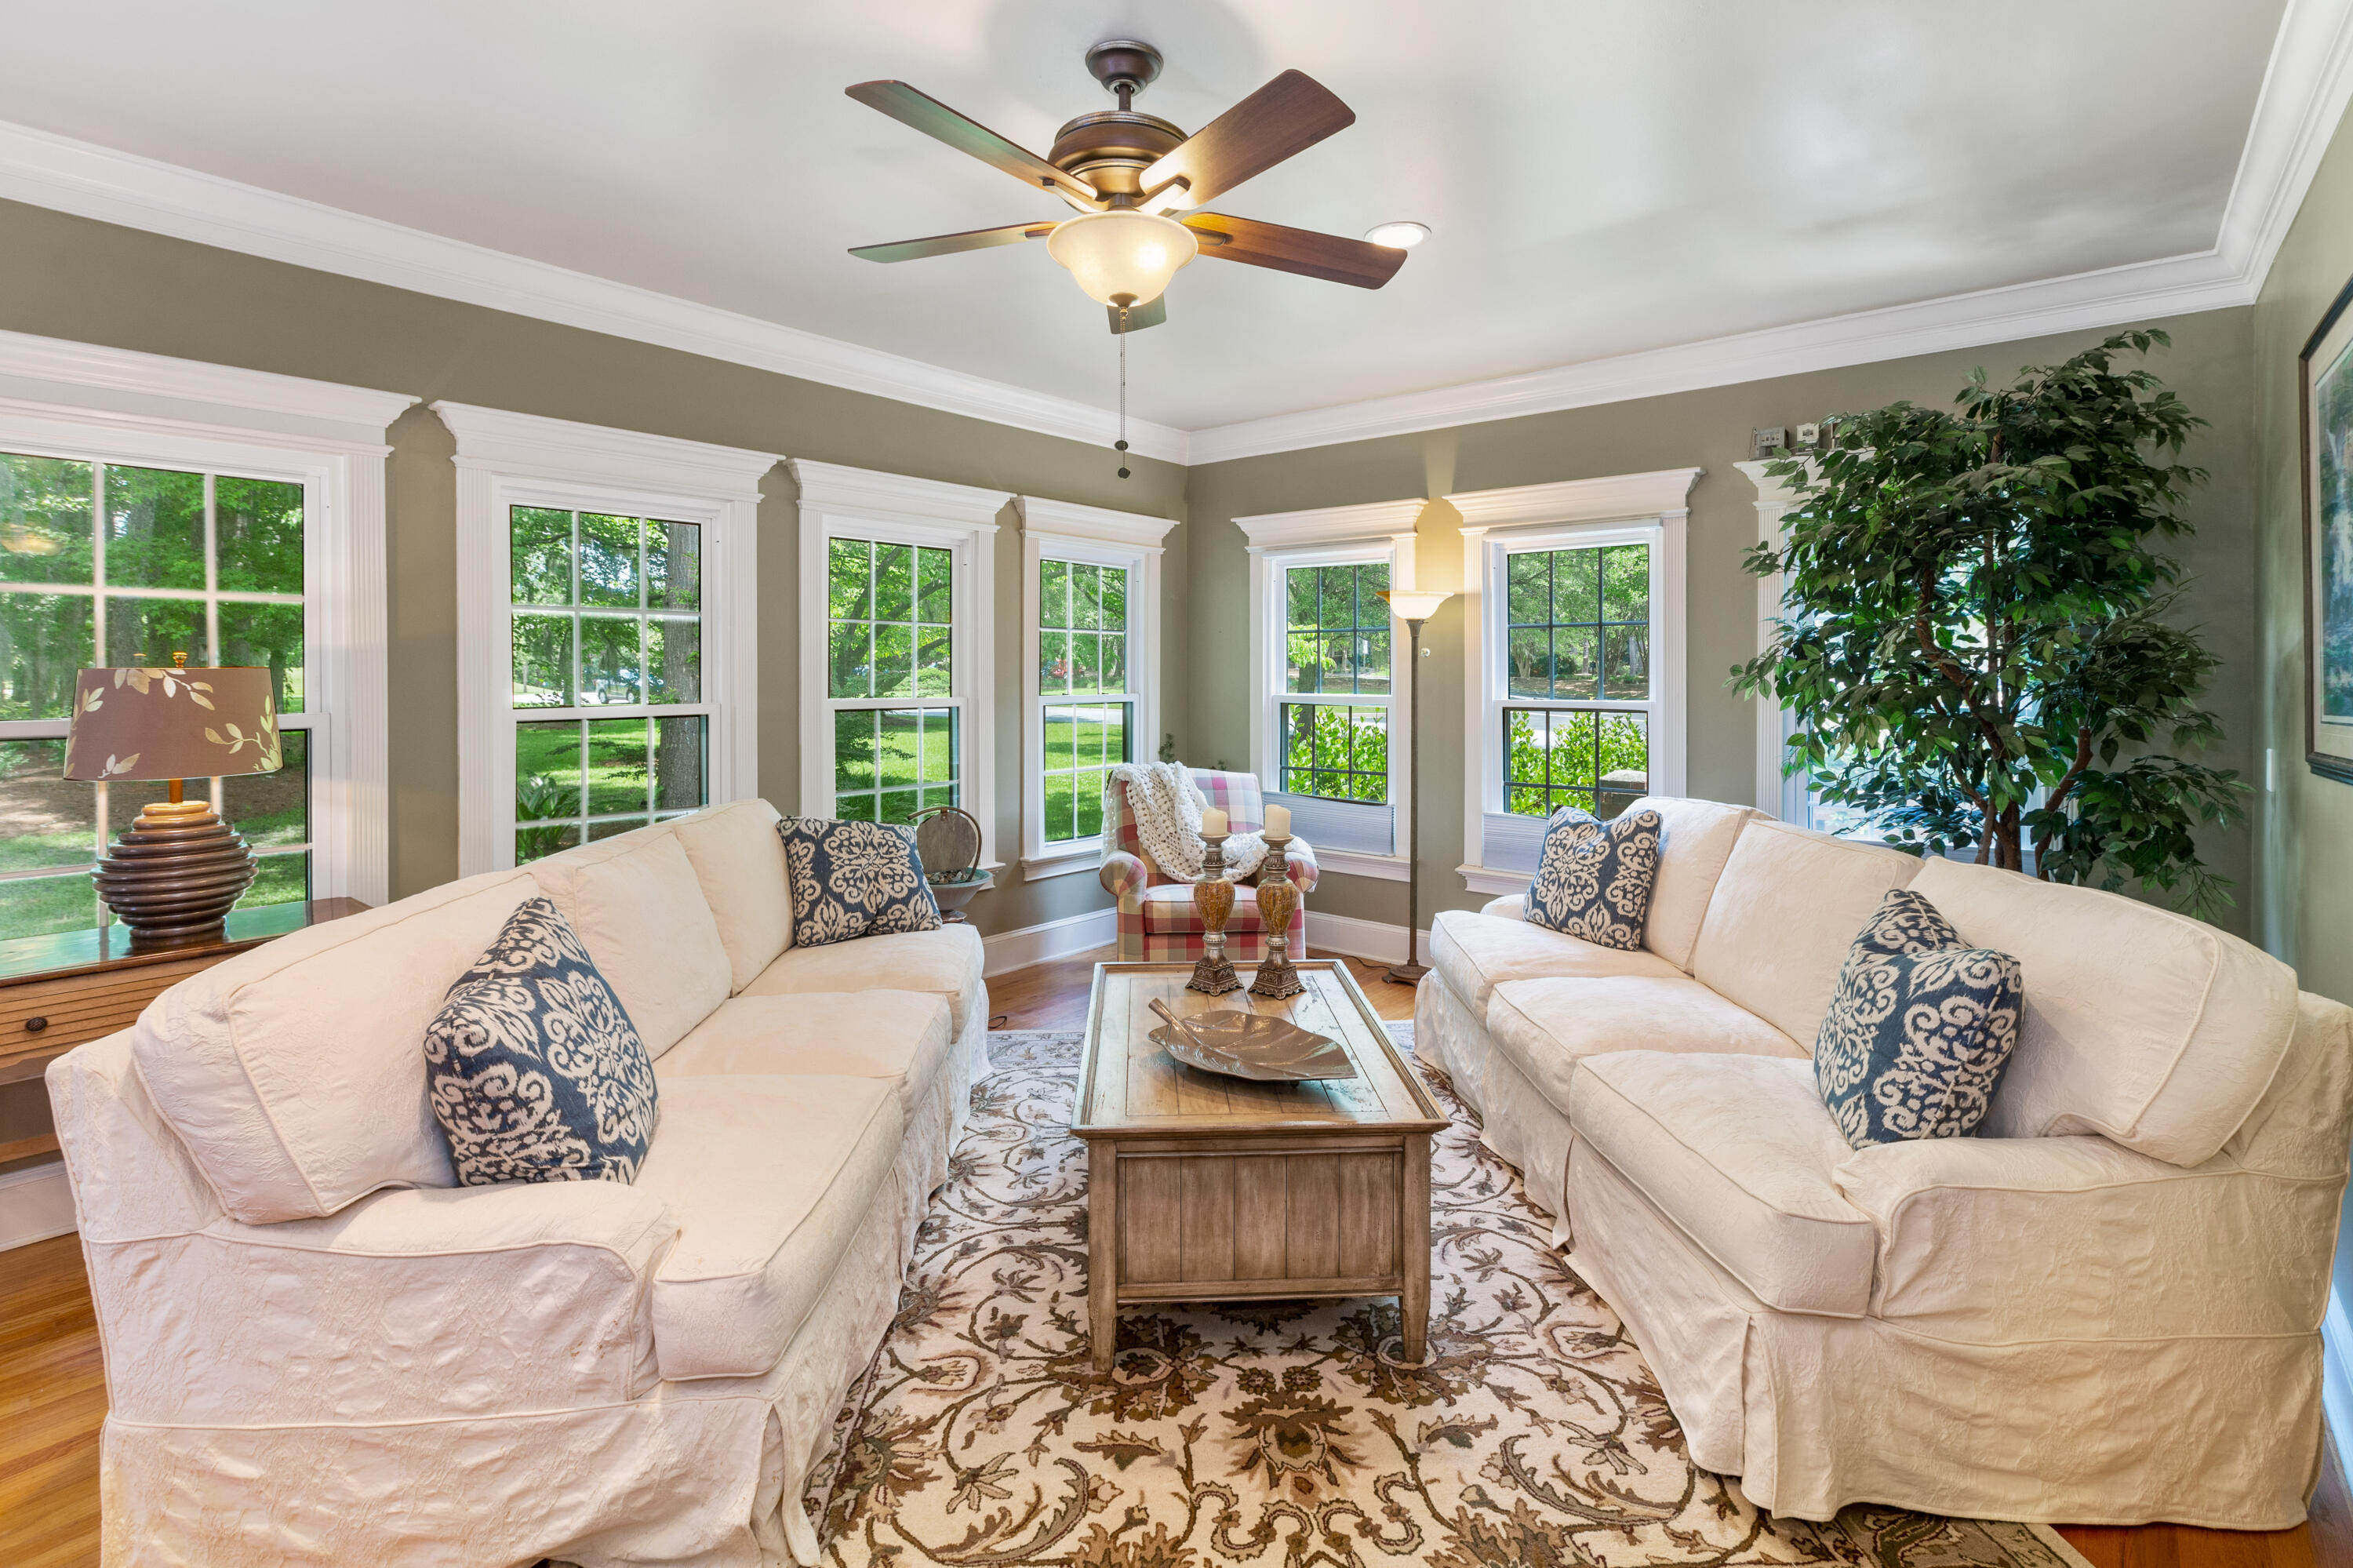 Coosaw Creek Country Club Homes For Sale - 8600 Wild Bird, North Charleston, SC - 27